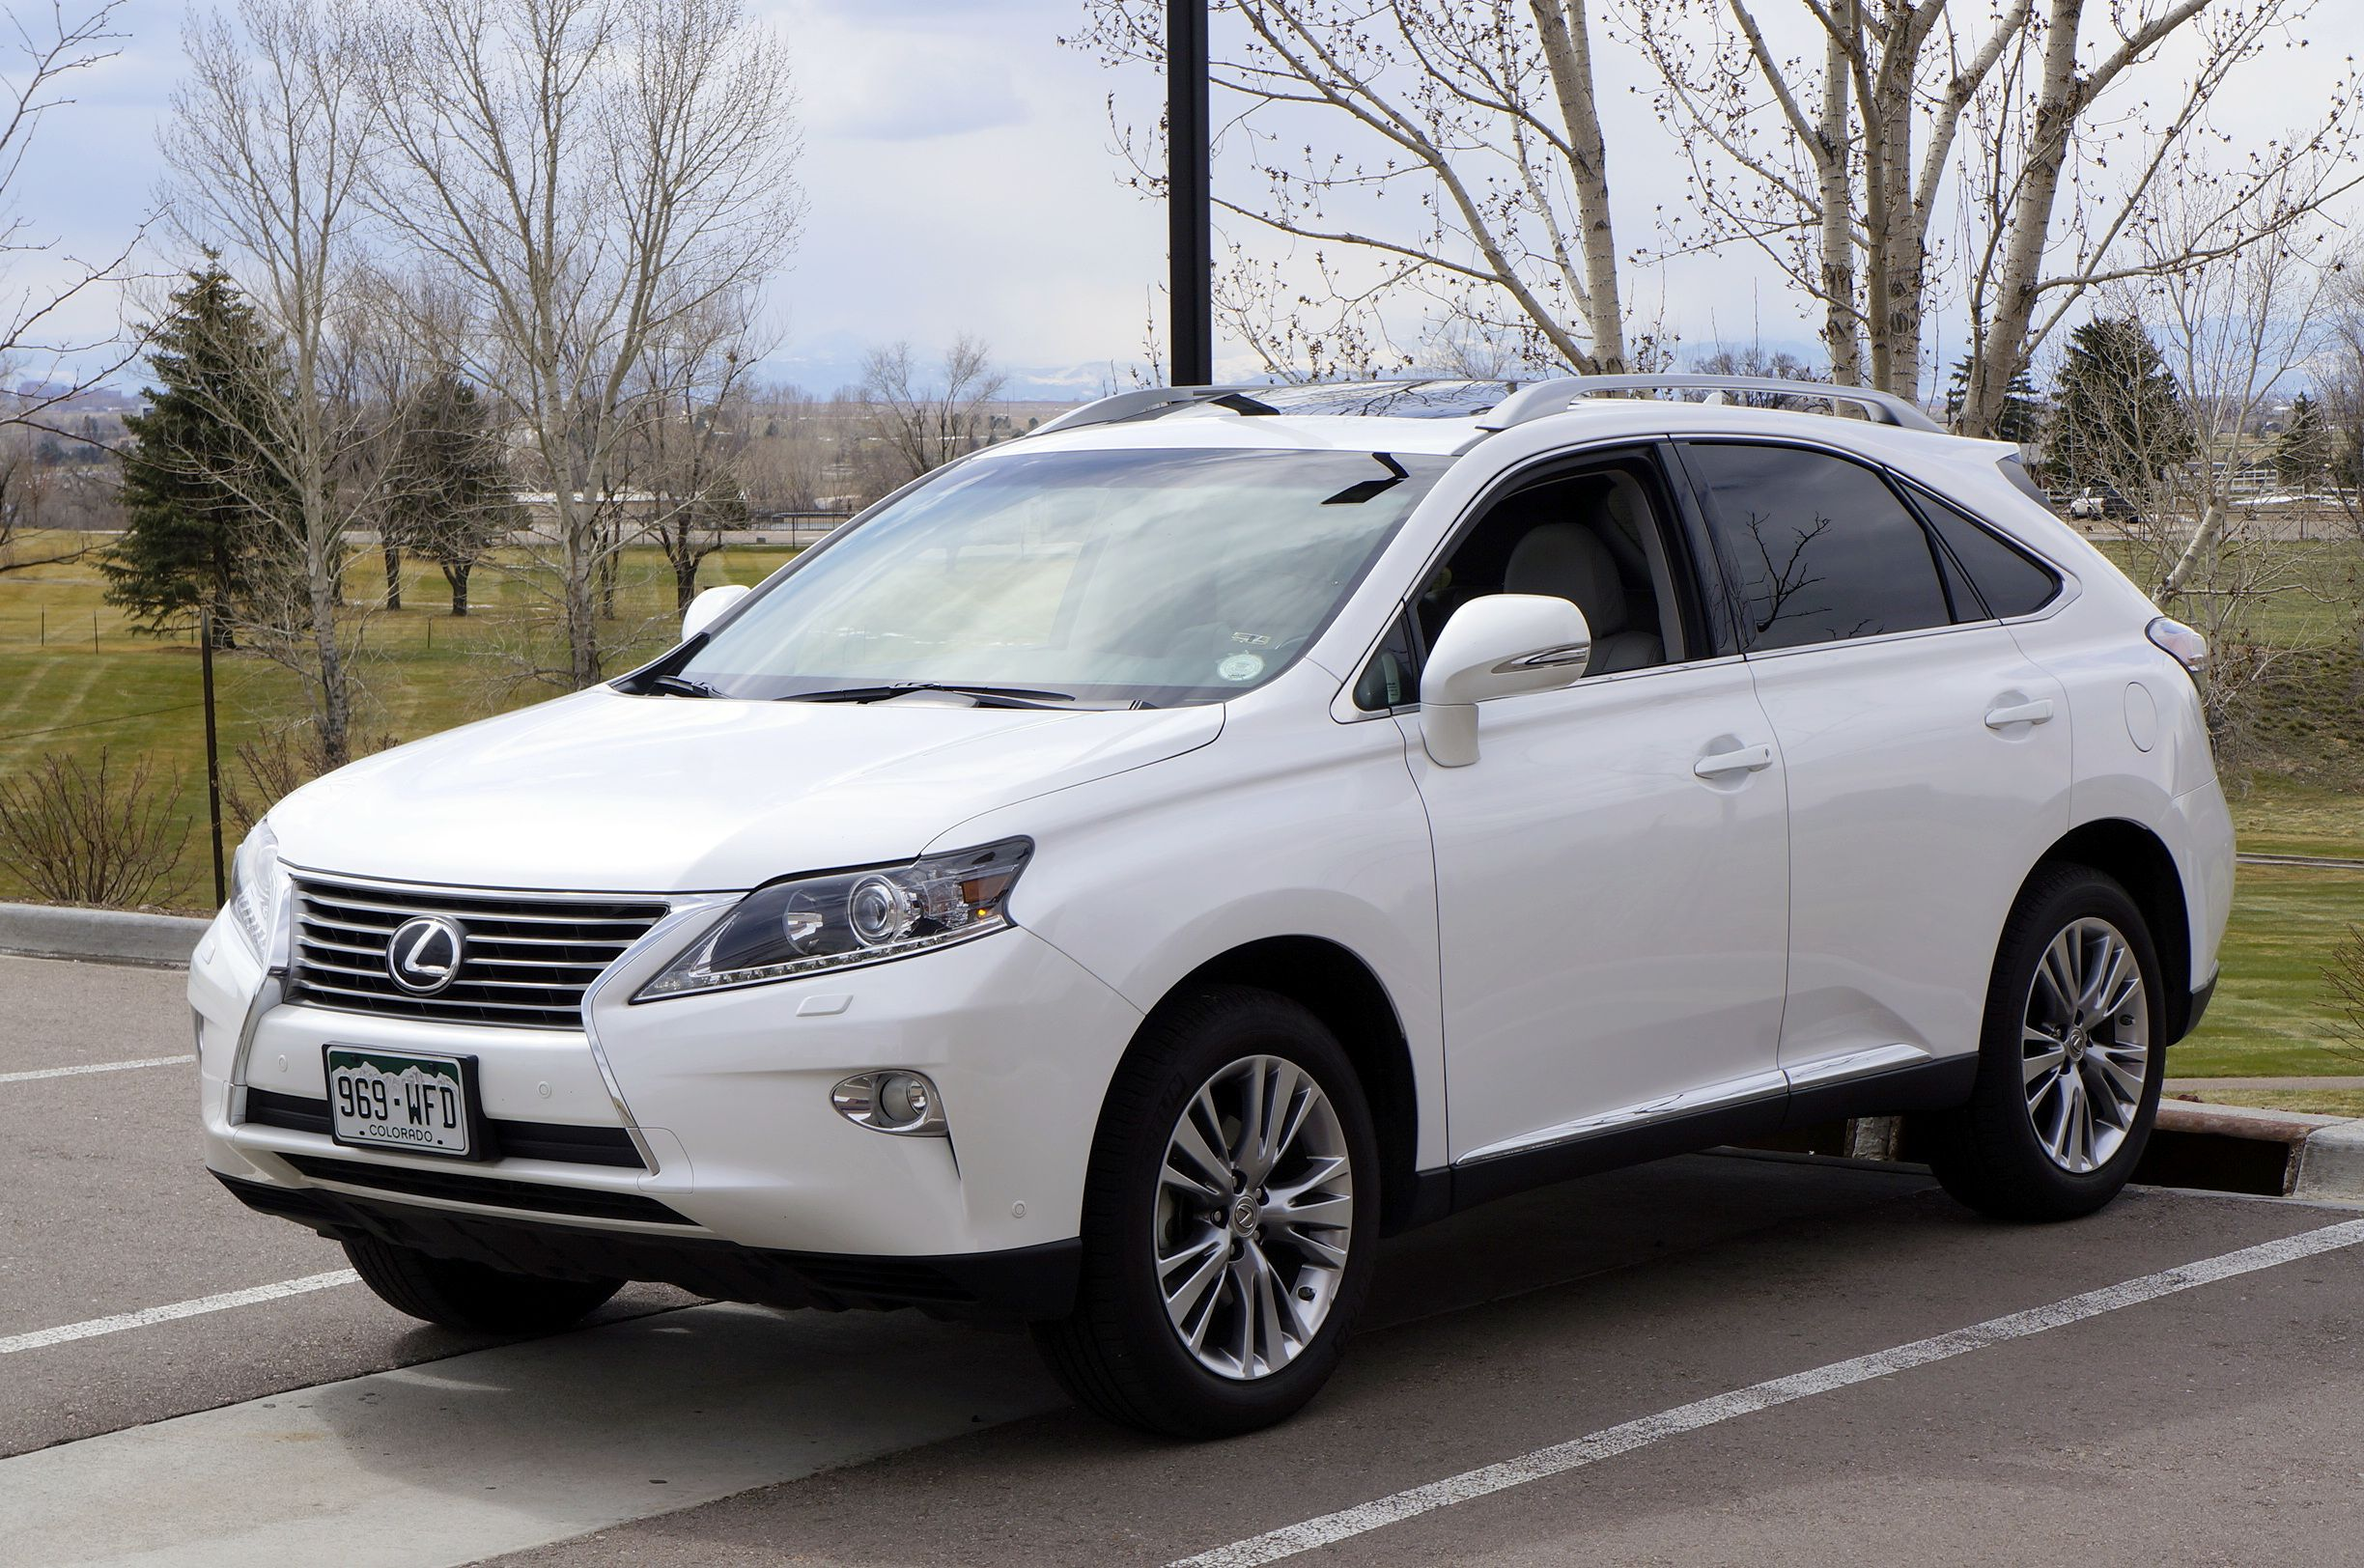 White Lexus Suv >> 2013 Lexus Rx350 Awd 5 Door Luxury Suv Northern Colorado Gazette